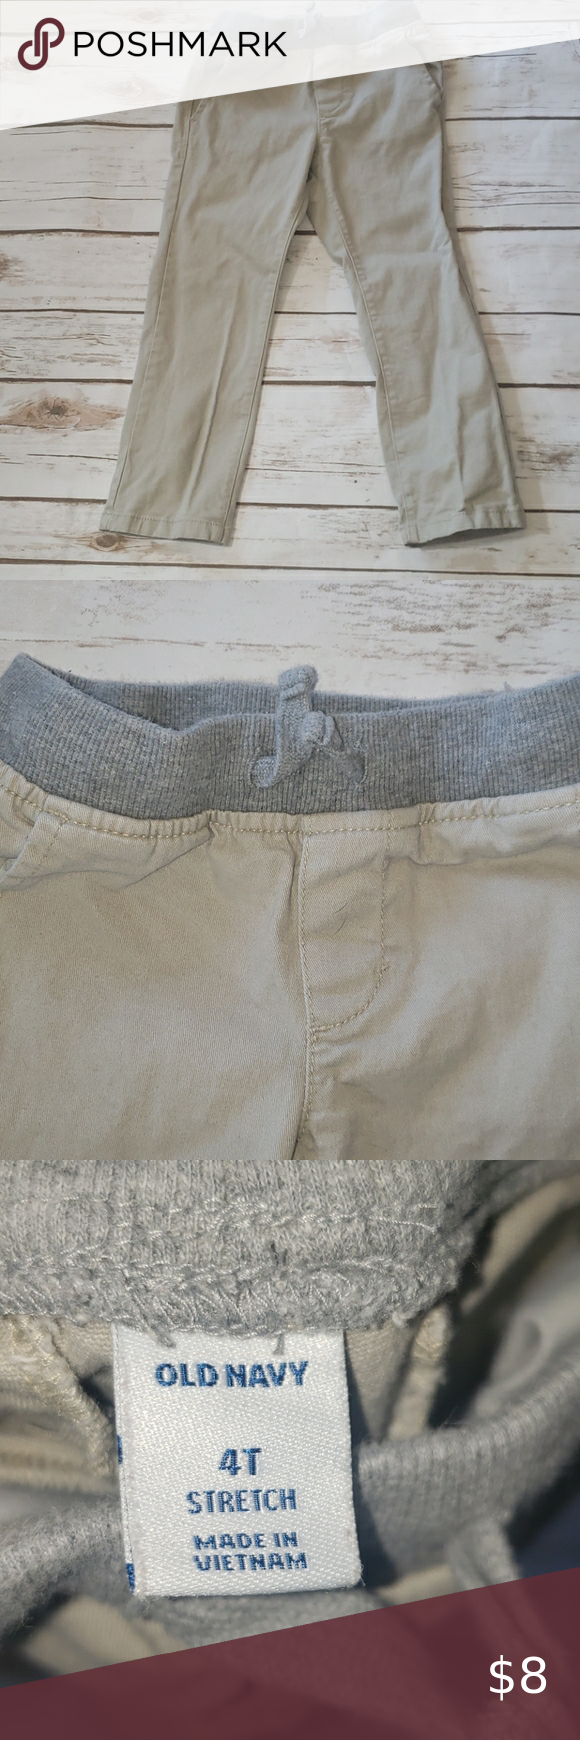 Old Navy Stretch Pull on Pants size 4T Khaki